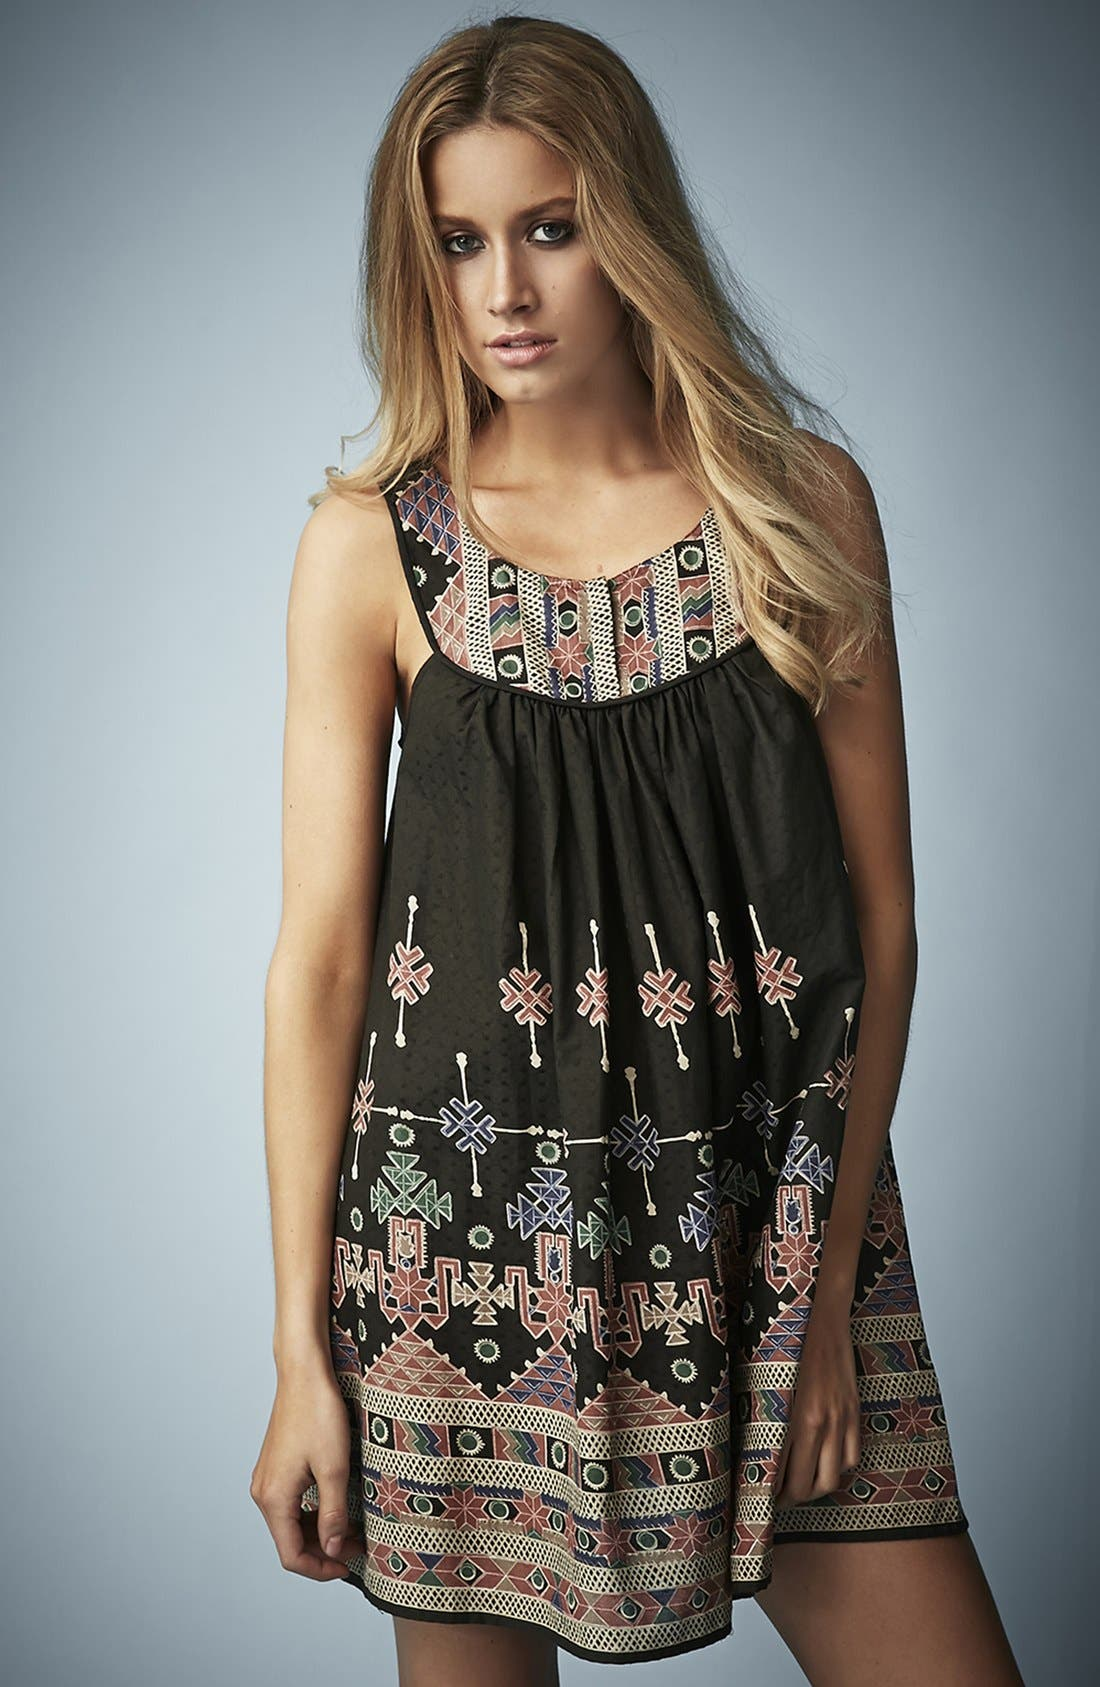 Main Image - Kate Moss for Topshop Aztec Print Sundress